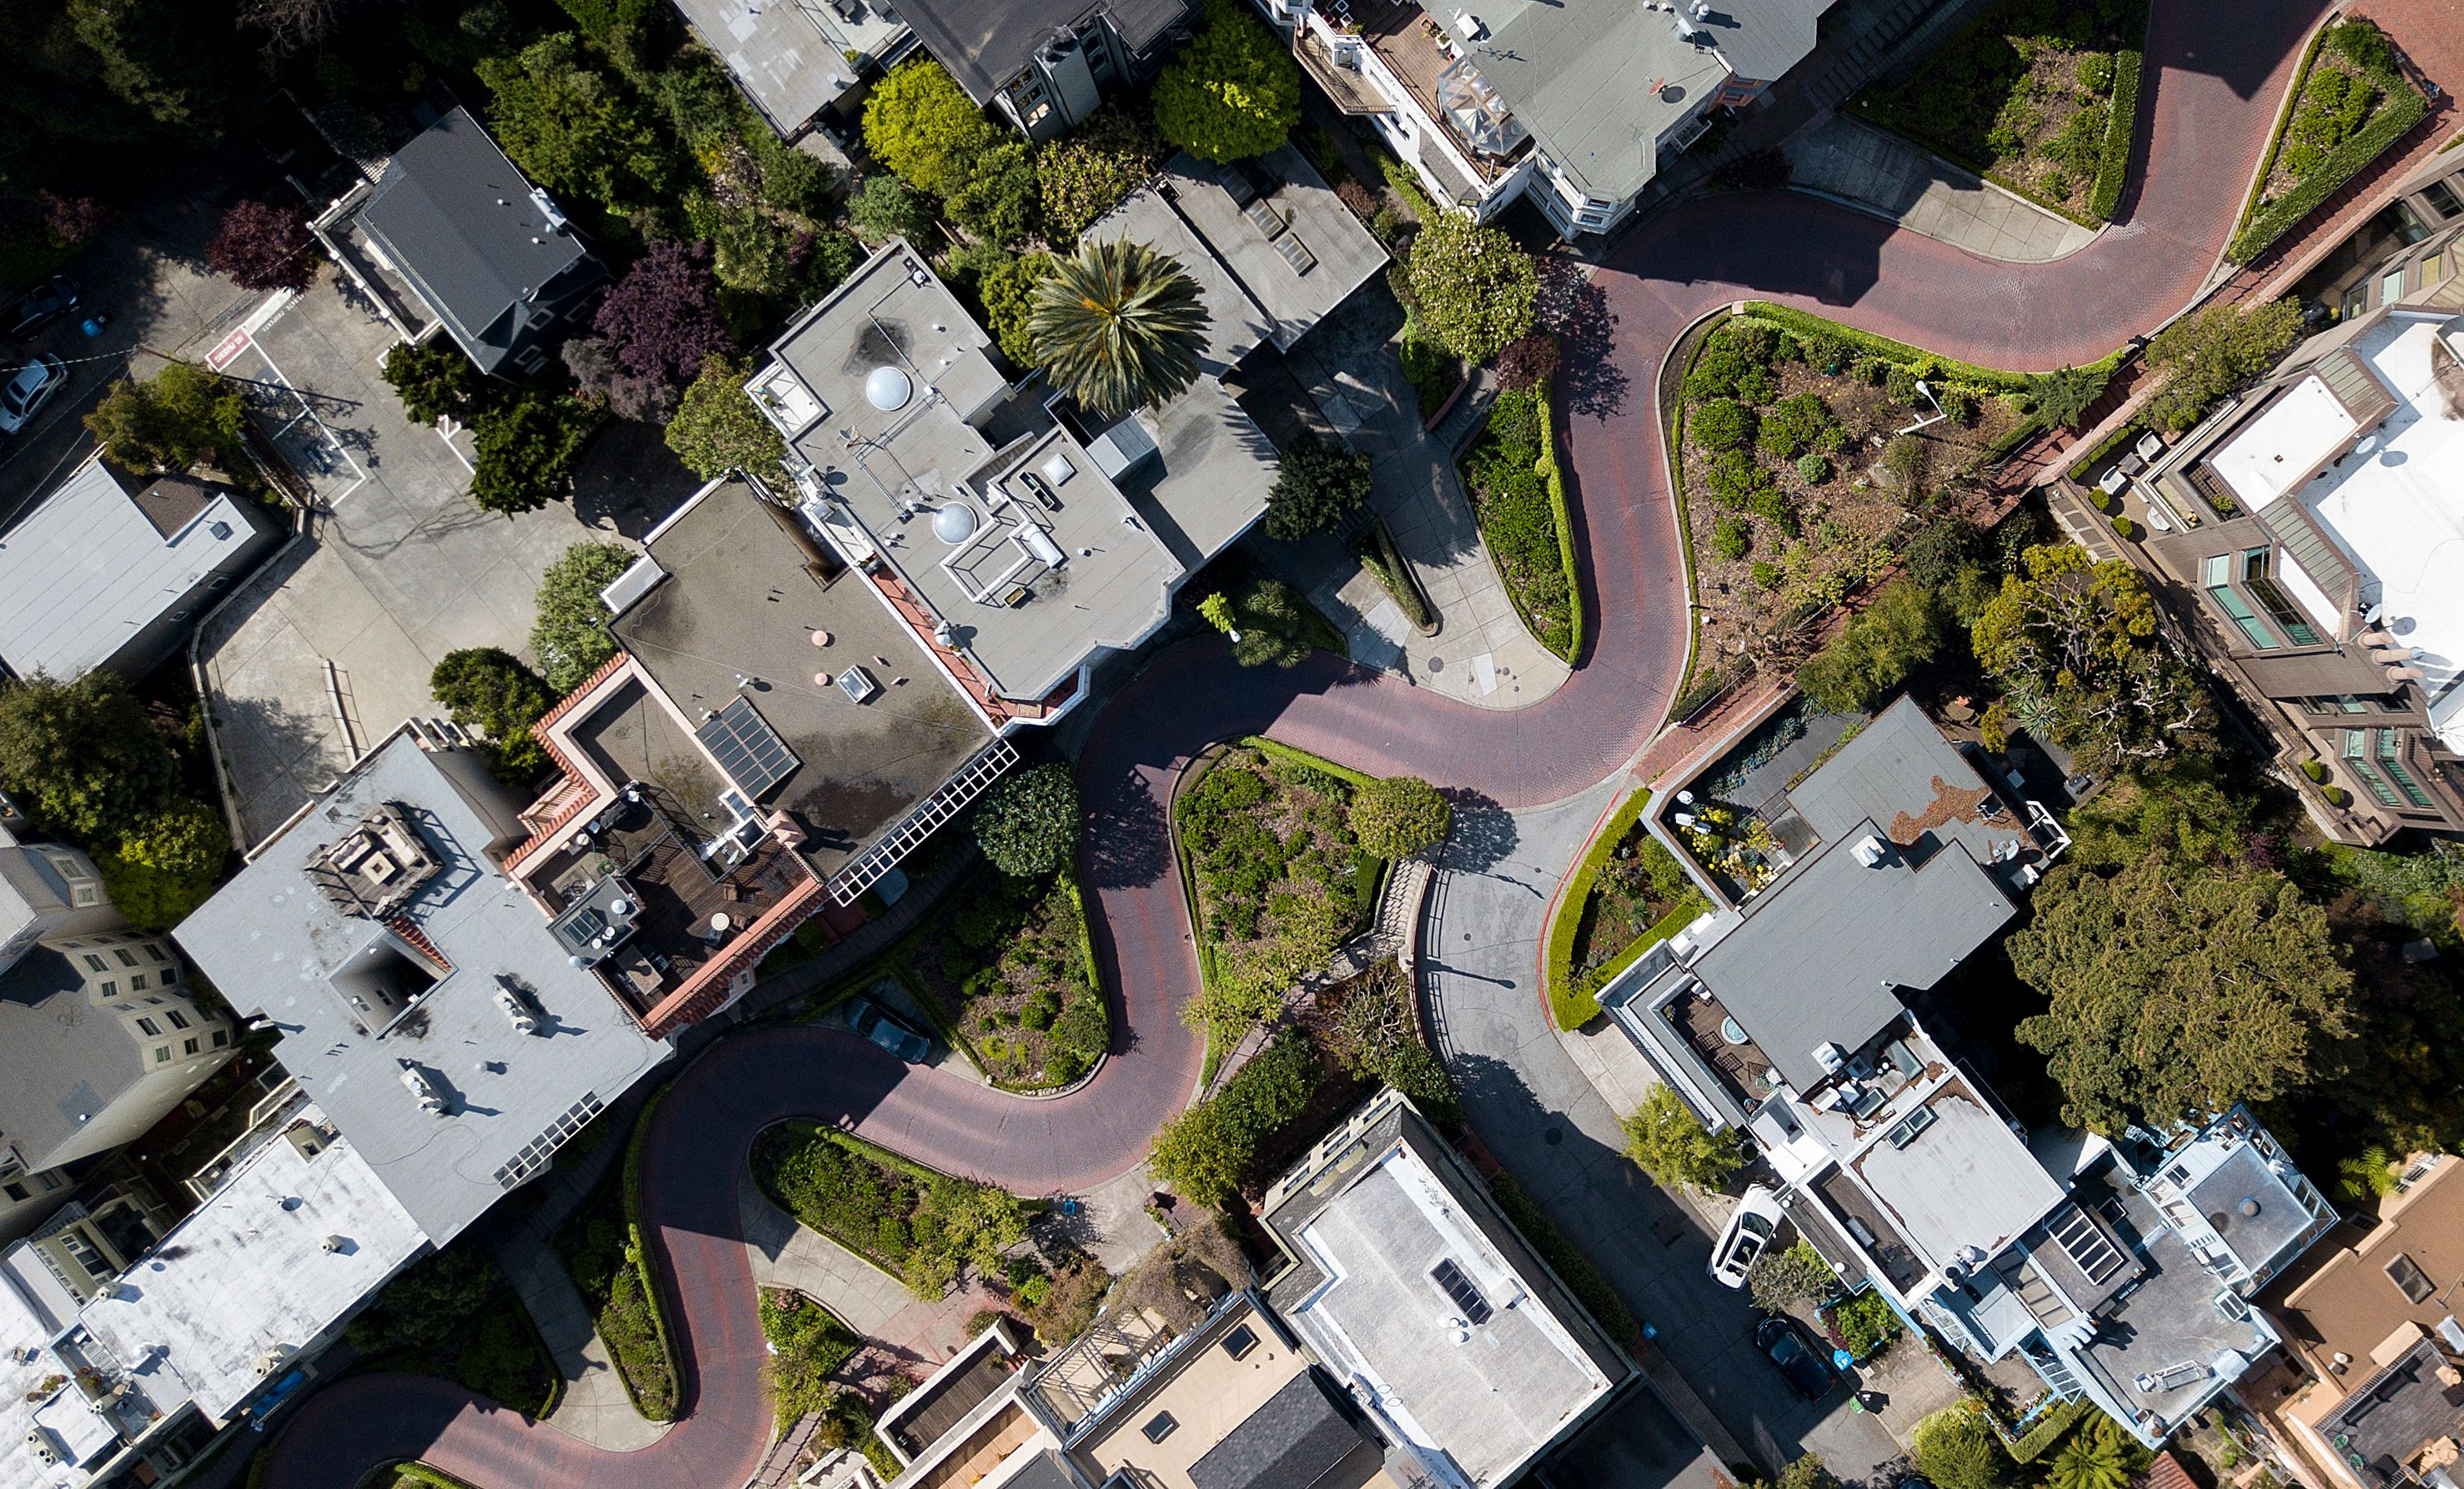 An aerial view of a curvy street with no cars on it.